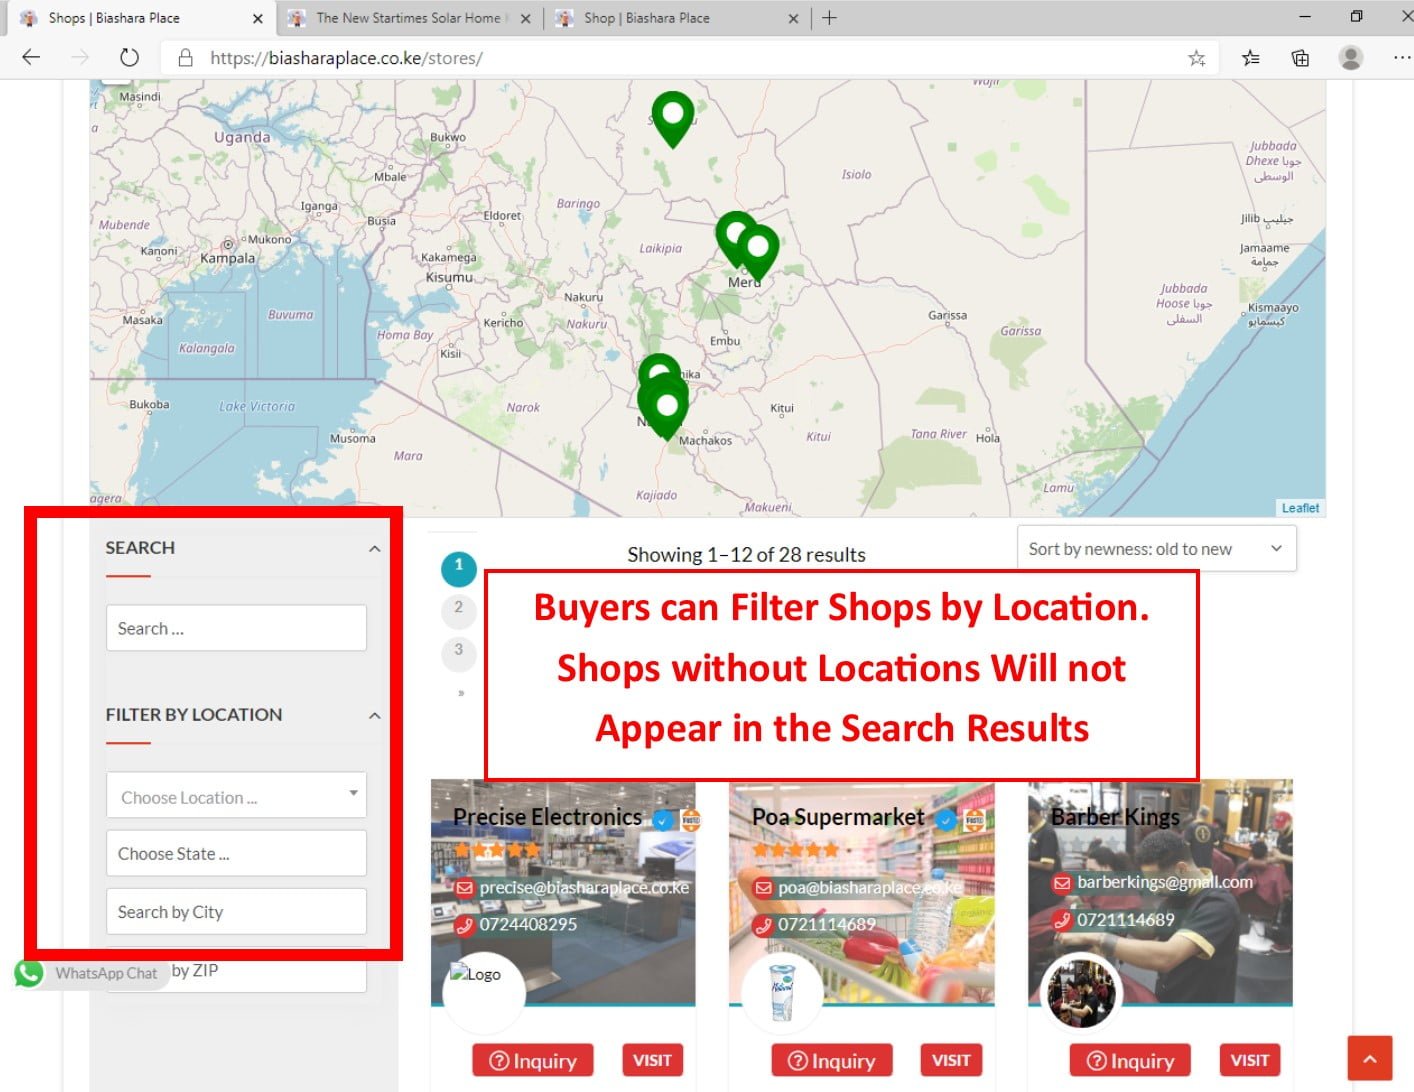 Shops FIlter by Location